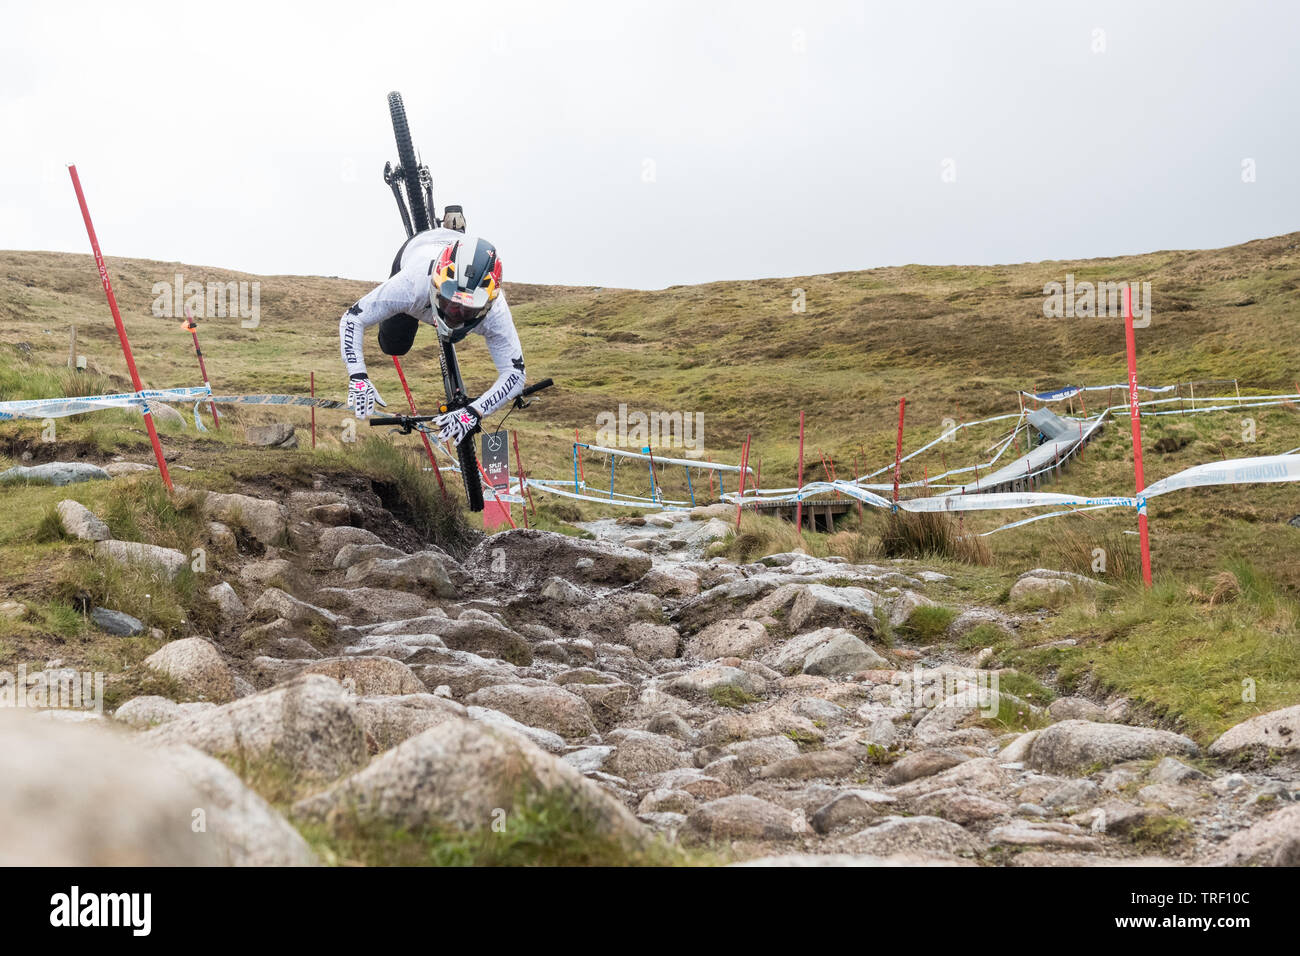 Finn Iles crash sequence during practice run - UCI Mountain Bike World Cup at Fort William, Scotland - series of 13 images  image 6/13 - Stock Image